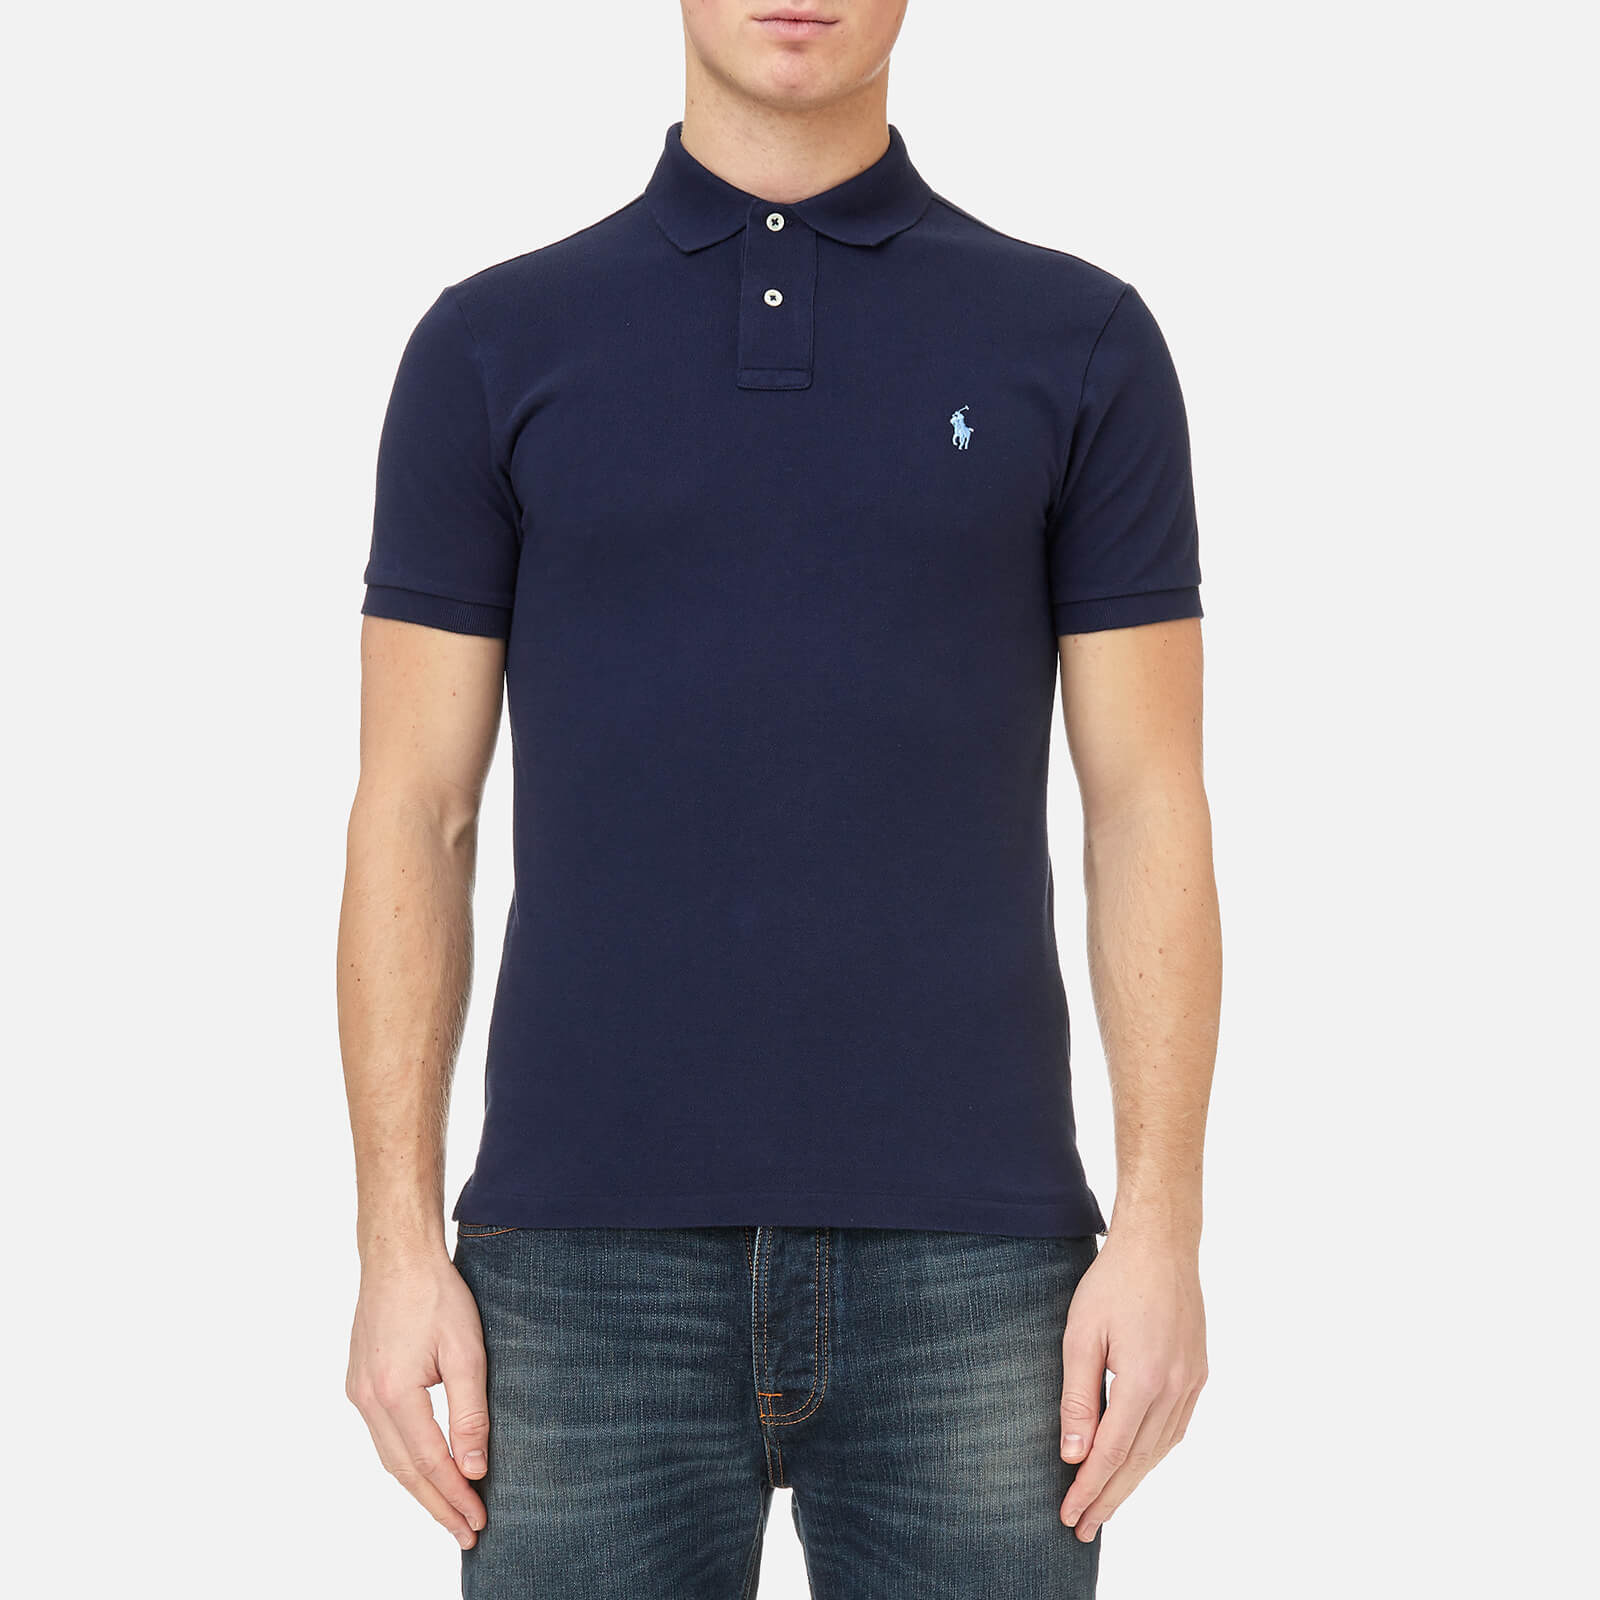 a2ae1c0fc8 Polo Ralph Lauren Men's Slim Fit Polo Shirt - Newport Navy - Free UK  Delivery over £50